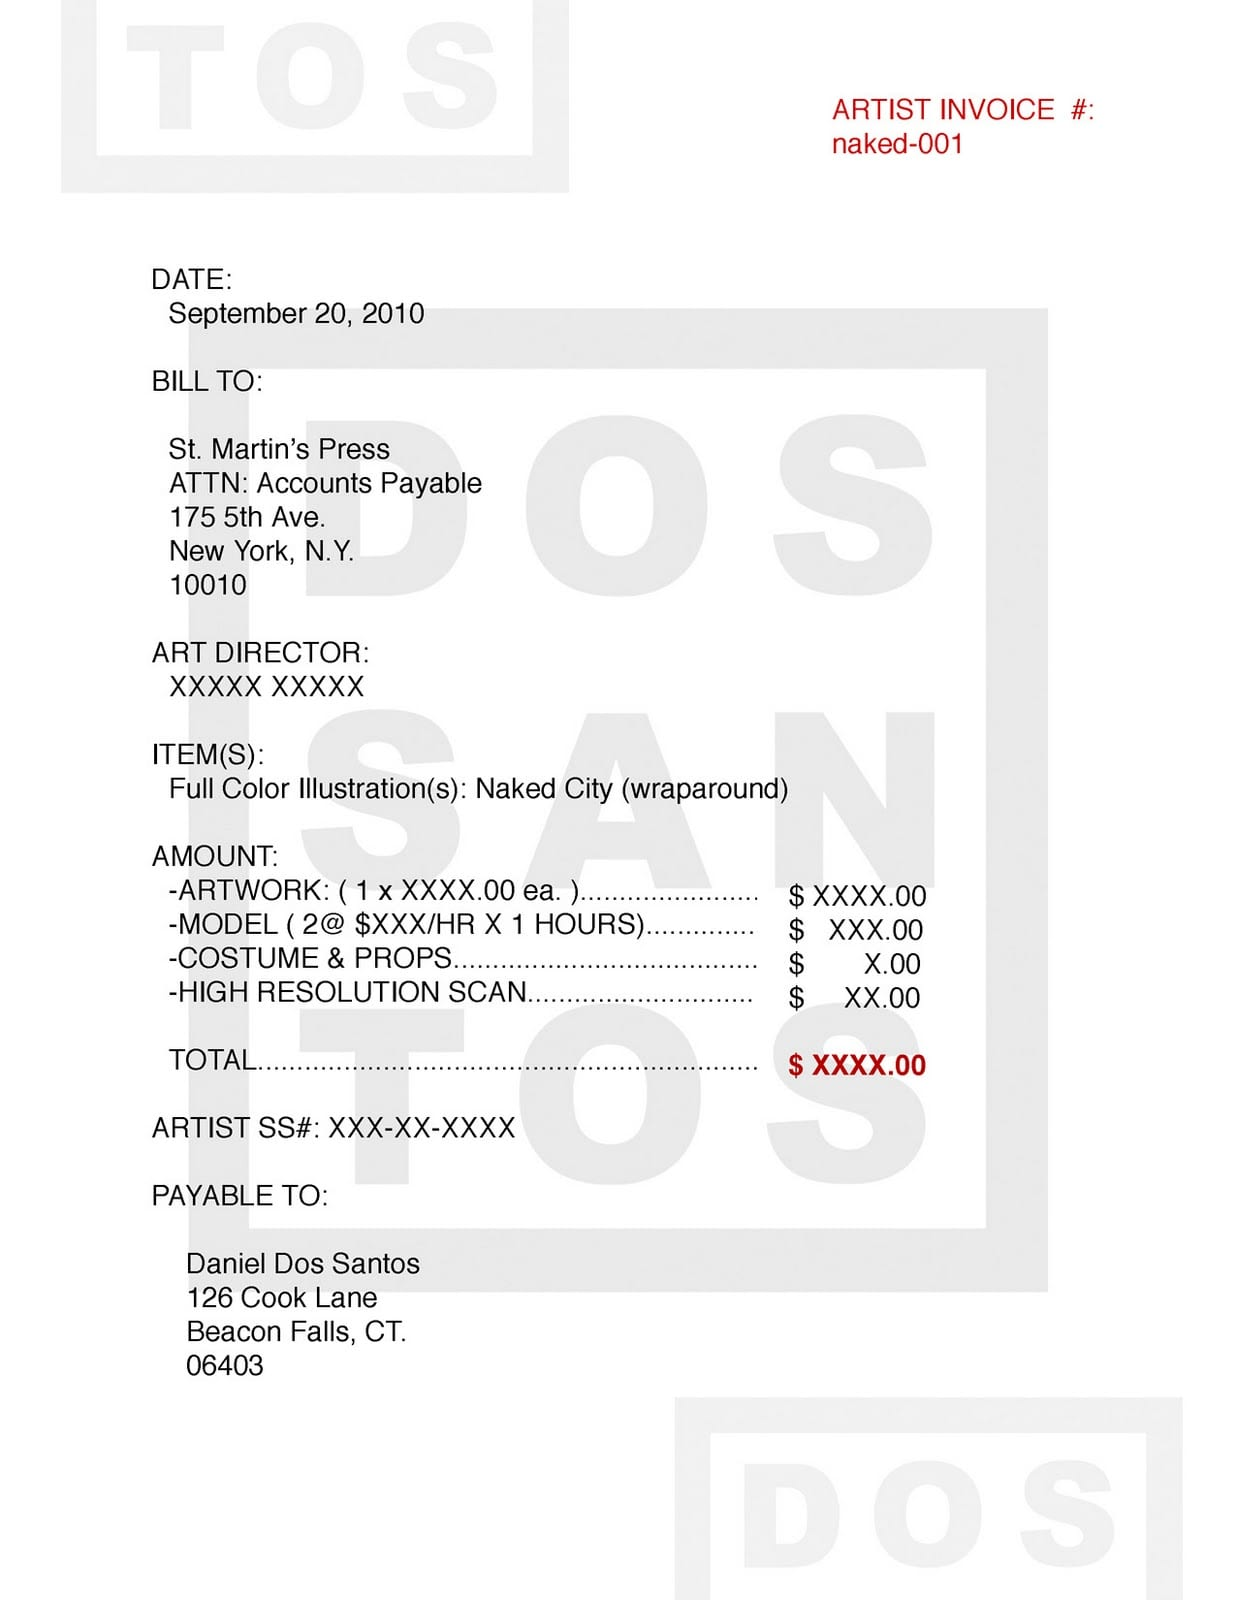 Freelance Invoice Artist Invoice Samples Spreadsheet Templates for Busines Spreadsheet Templates for Busines Freelance Makeup Artist Invoice Template